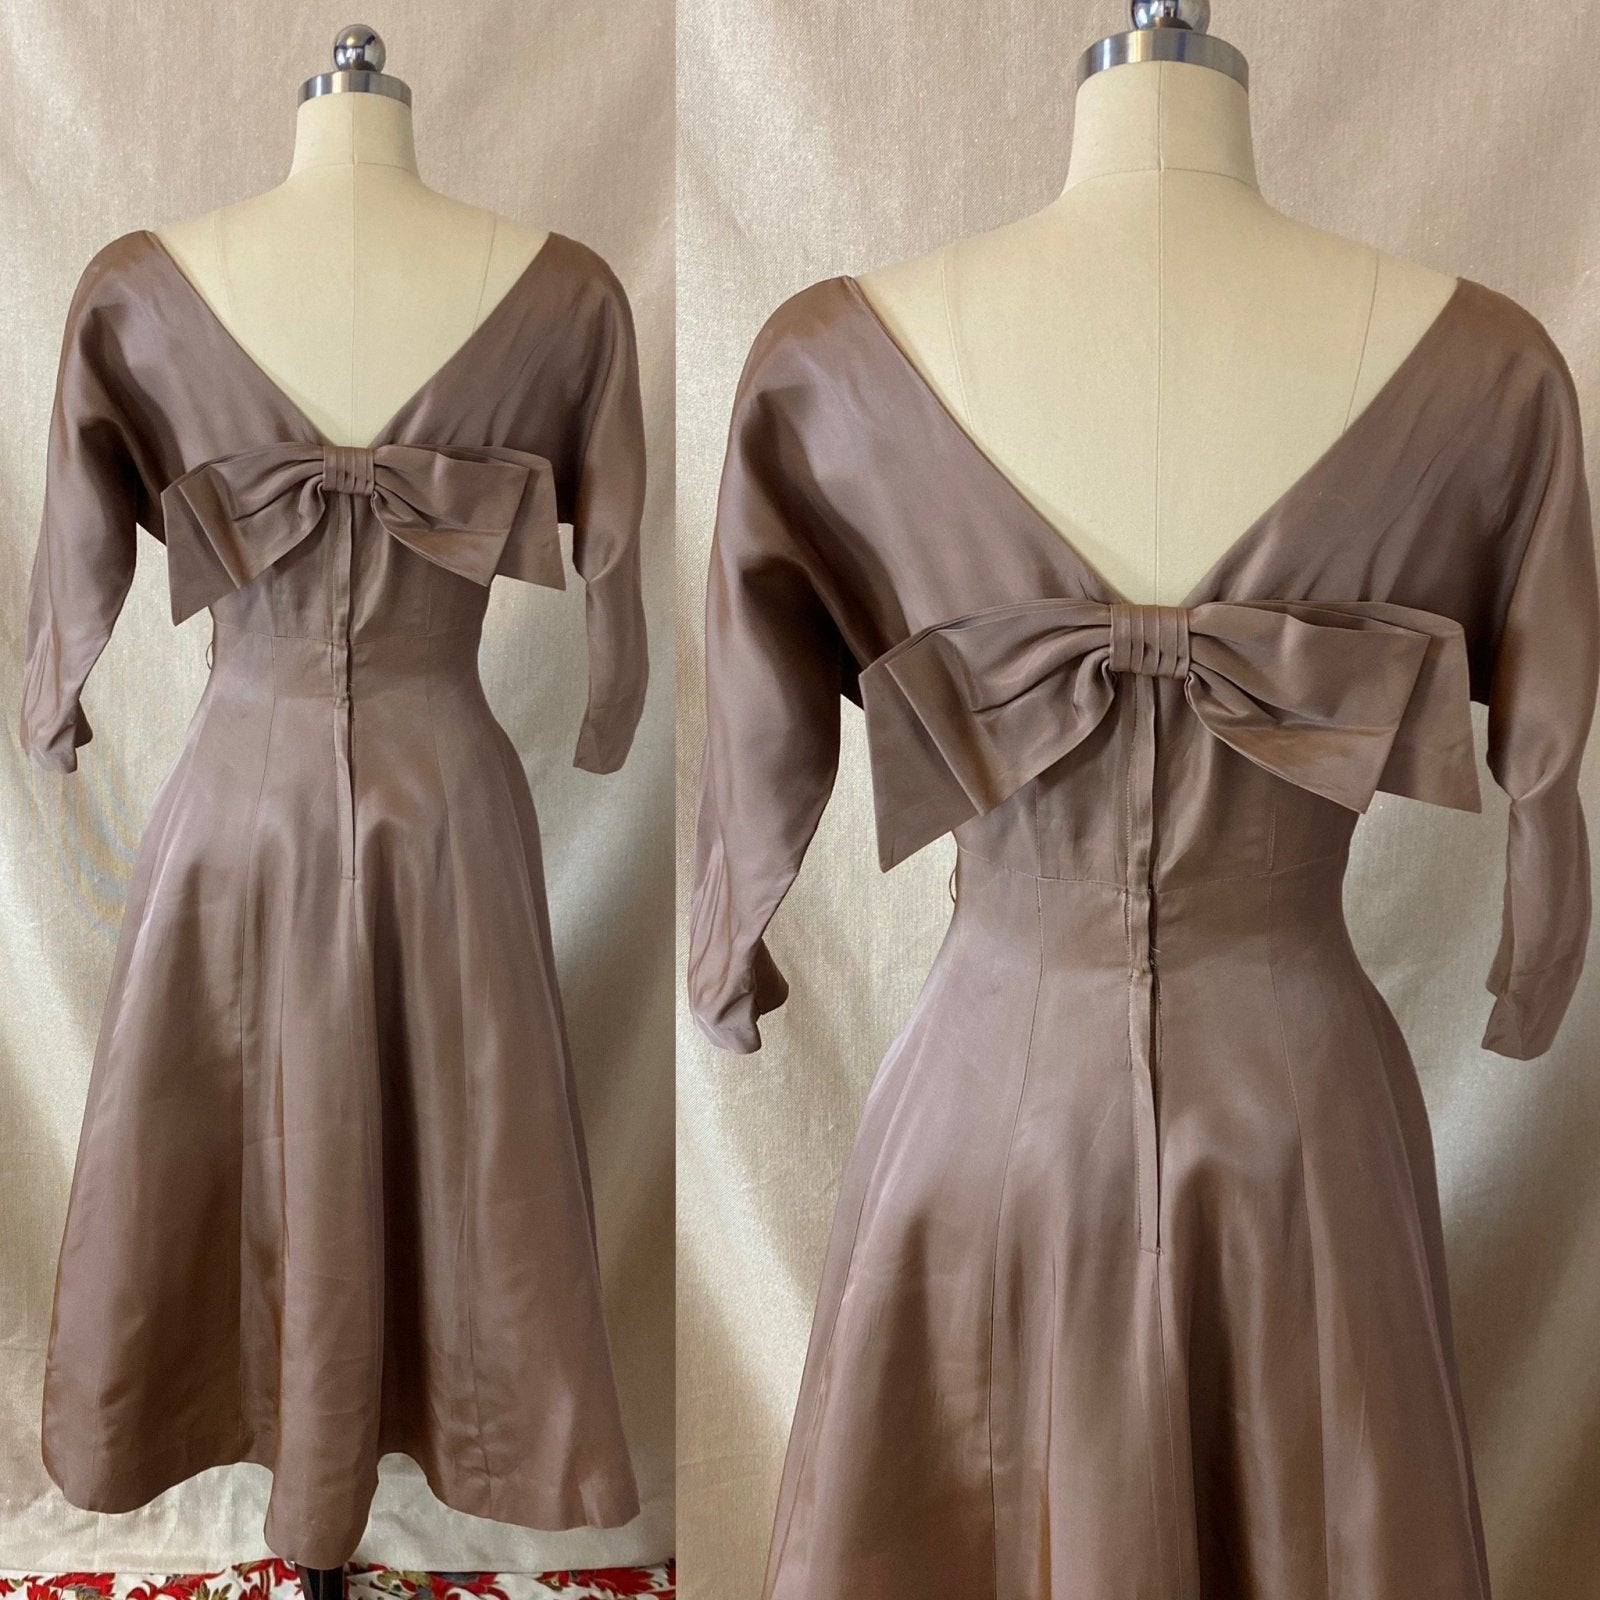 Vintage 1950's Full Swing Party Dress | Warm Taupe Taffeta with Large Bow & Portrait Neckline | Size 38 Bust, M/LG | Leslie Fay - Daggers & Dames